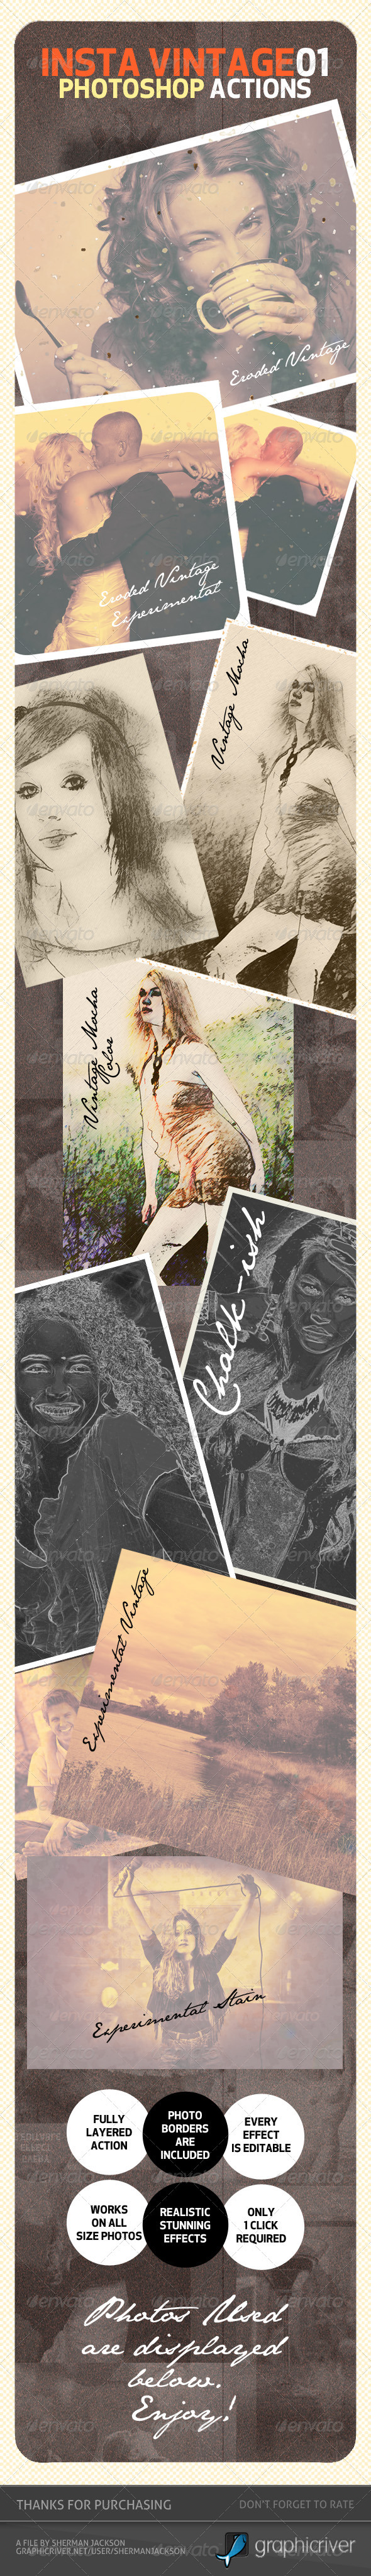 GraphicRiver INSTA Vintage Photoshop Actions ATN 3788016